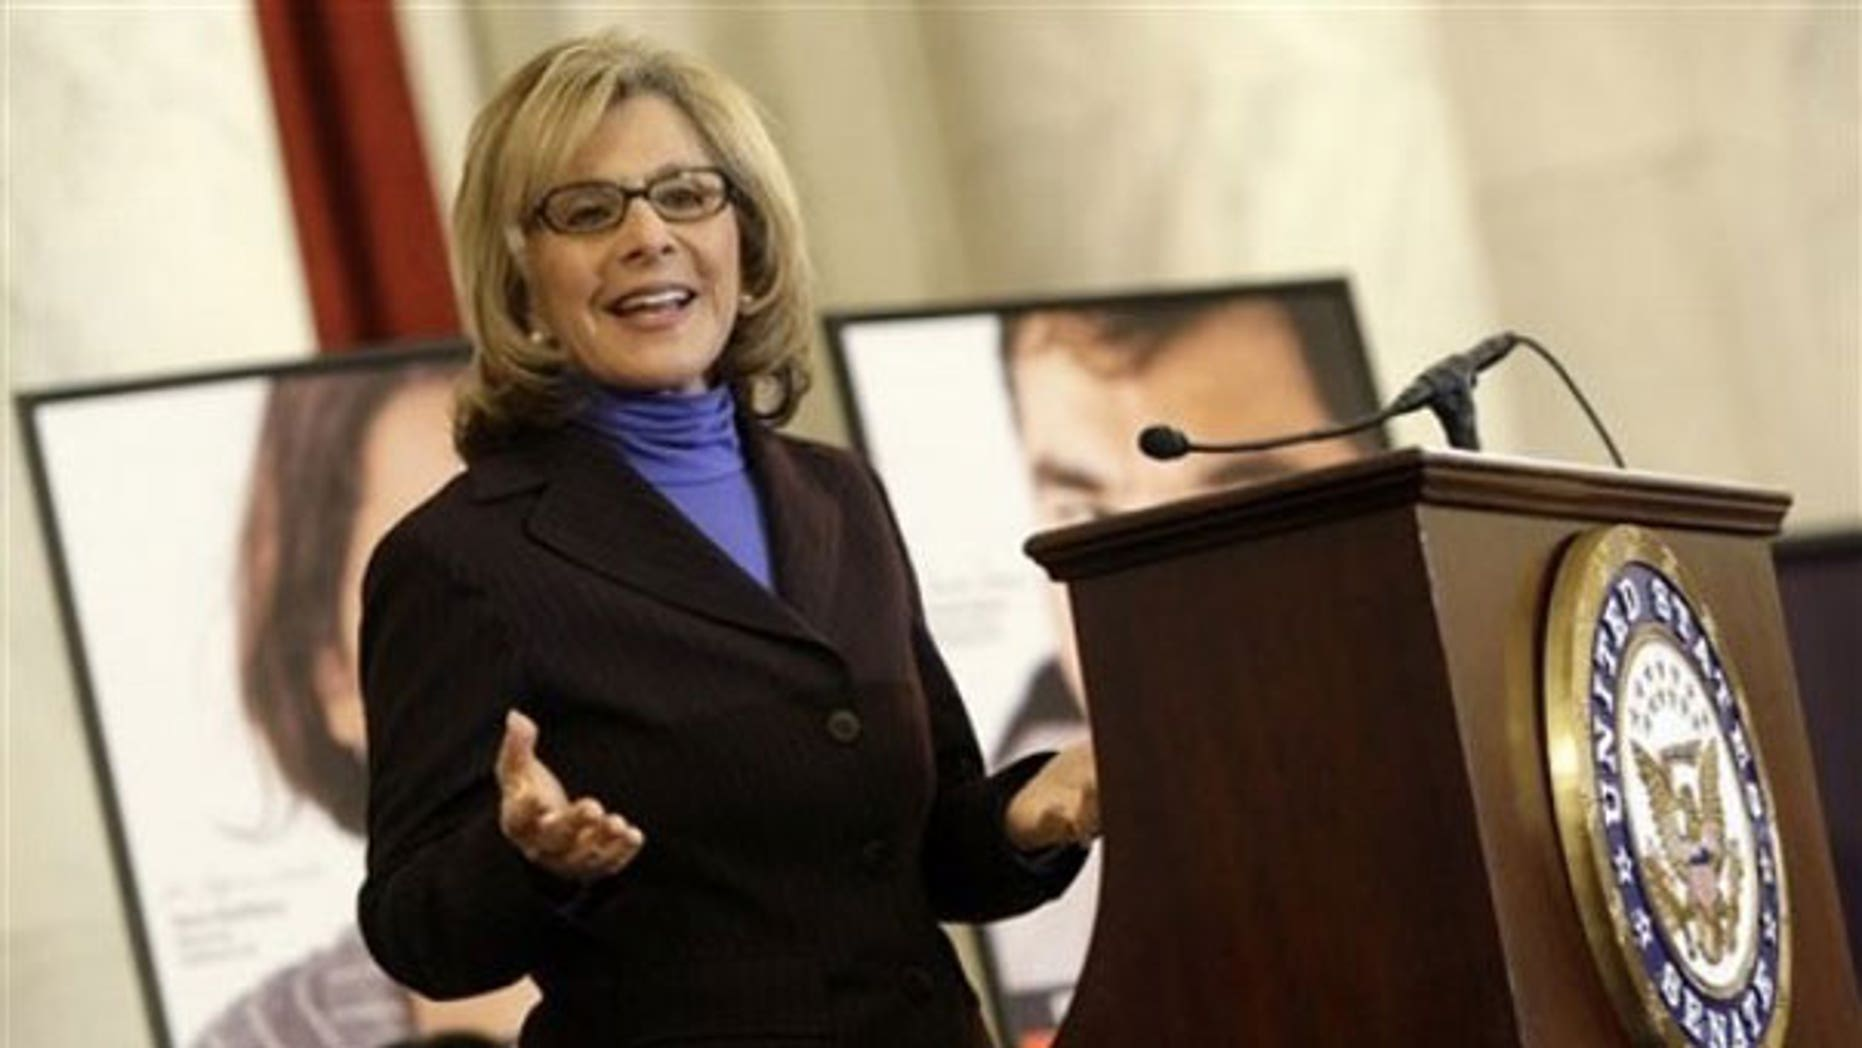 March 31: Sen. Barbara Boxer, D-Calif. gestures as she speaks on Capitol Hill in Washington (AP).